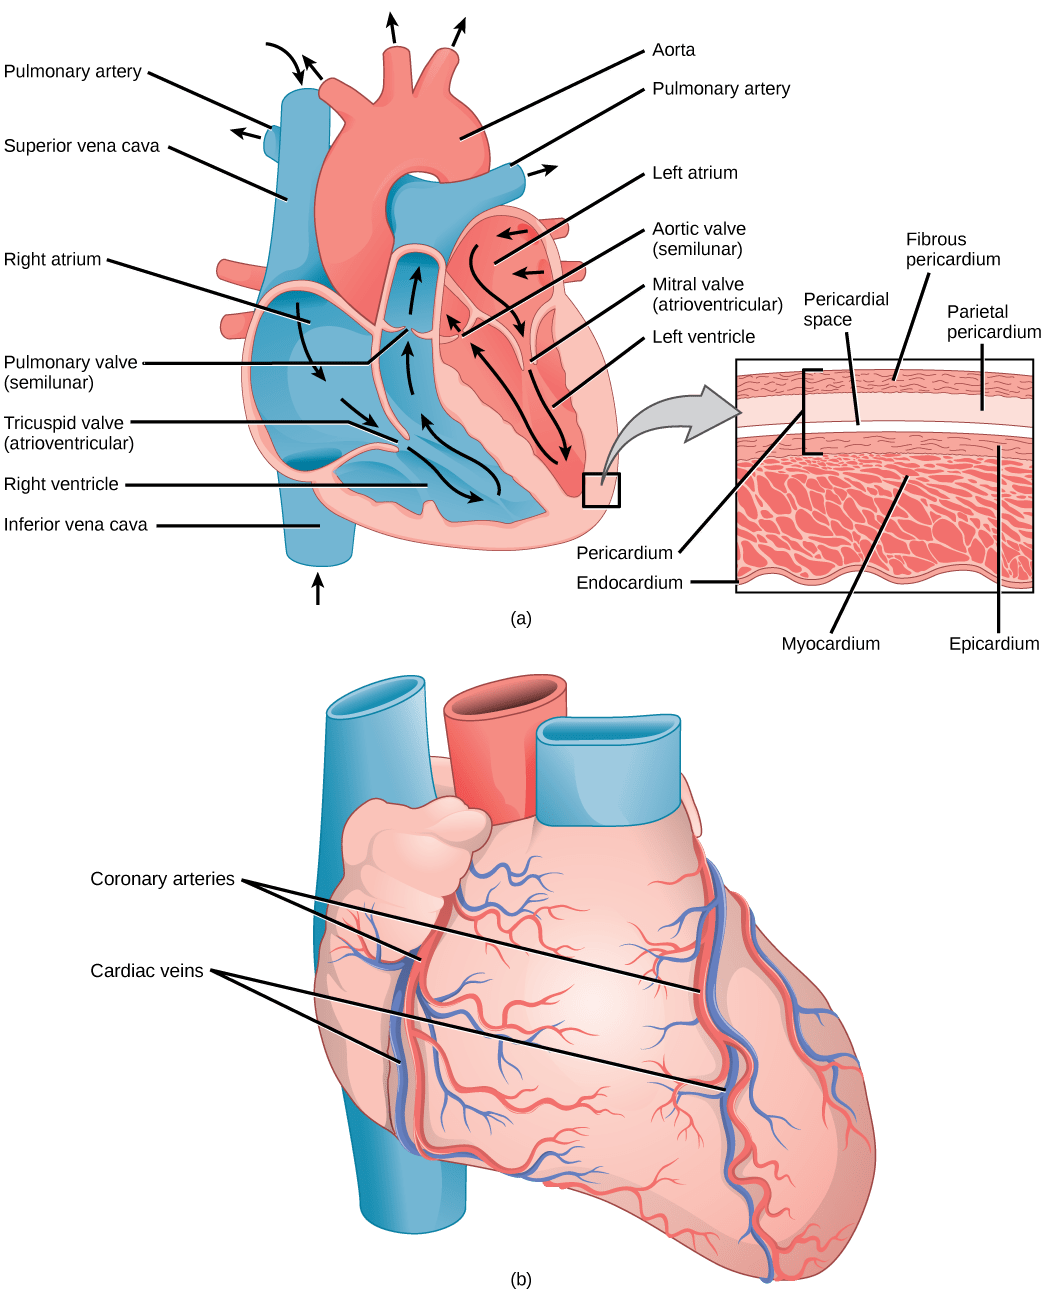 21 3 Mammalian Heart And Blood Vessels Concepts Of